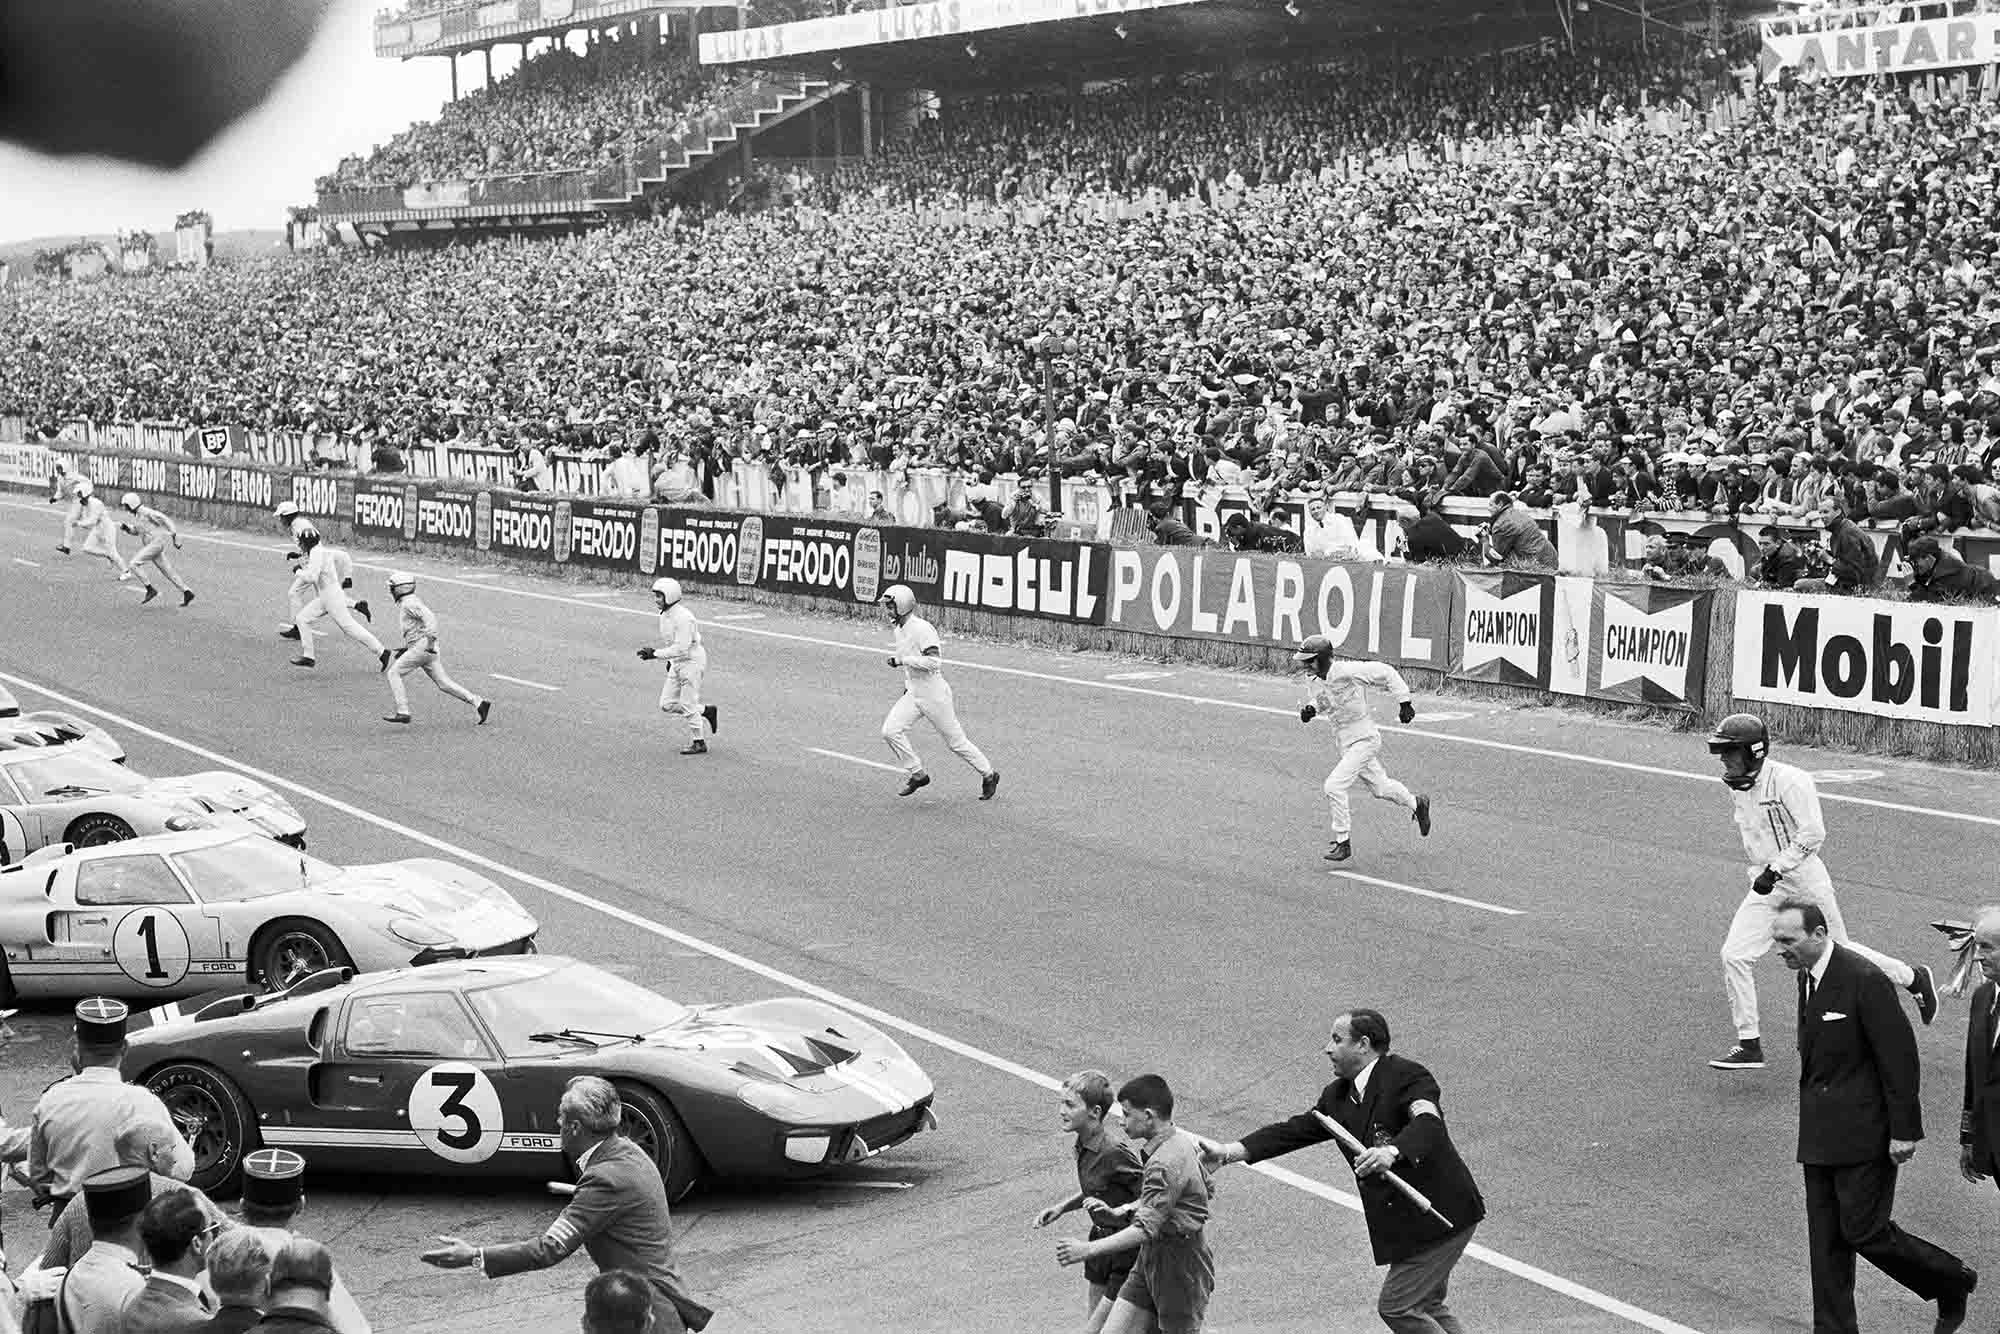 Drivers run to their cars at the start of 1966 Le Mans, with Dan Gurney on the right heading to his Ford GT40 MkII, followed by Ken Miles, John Whitmore, Bruce McLaren, Pedro Rodriguez, Graham Hill, Mike Parkes and Jean Guichet.